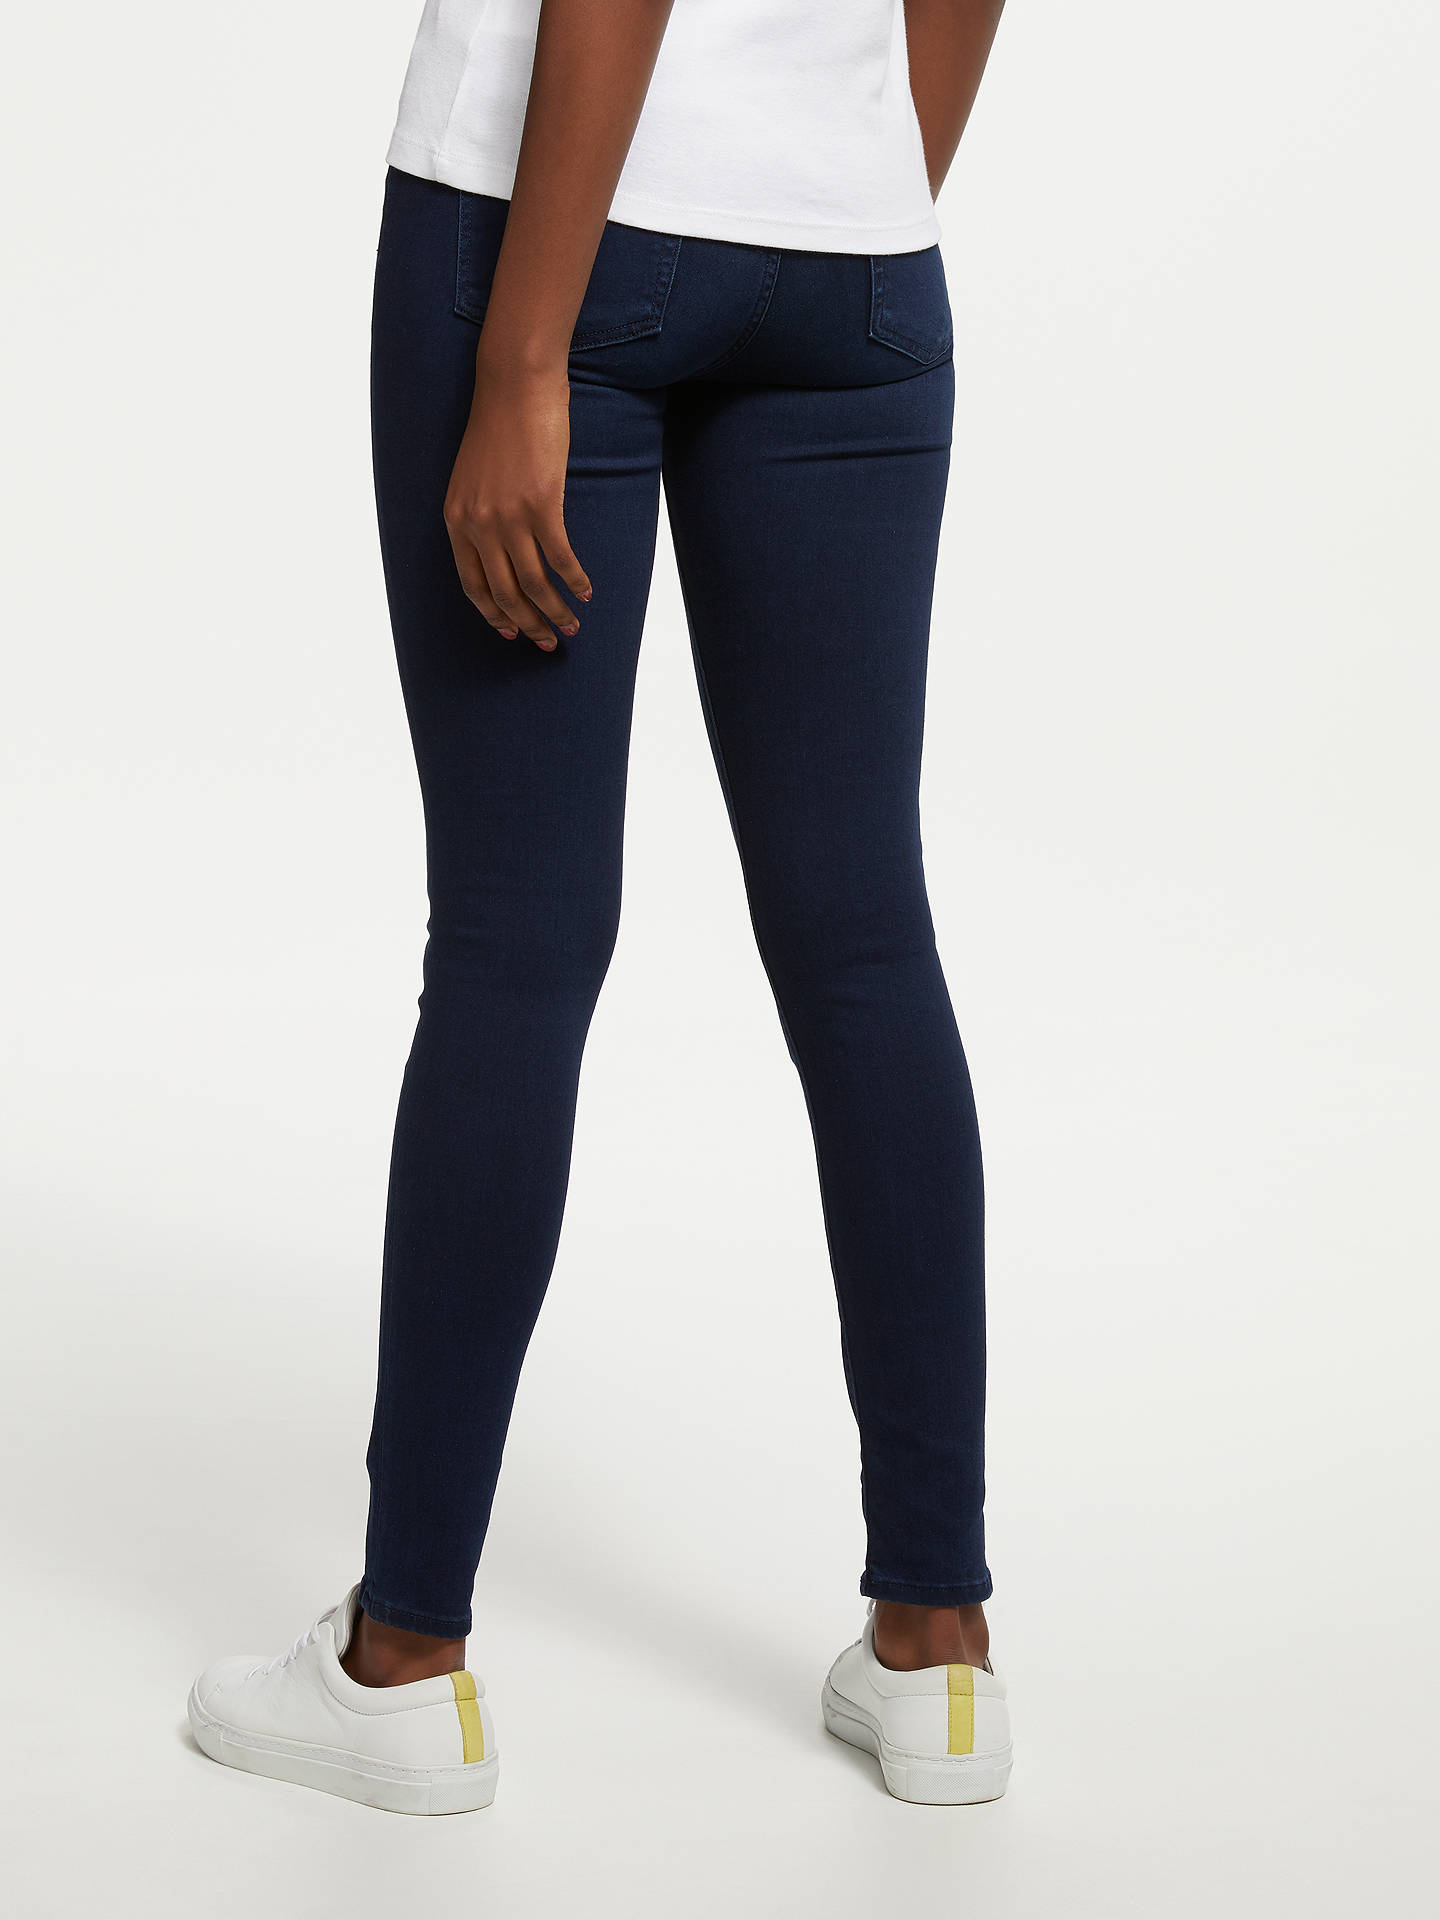 Buy7 For All Mankind Slim Illusion Luxe Jeans, Rich Indigo, 26 Online at johnlewis.com